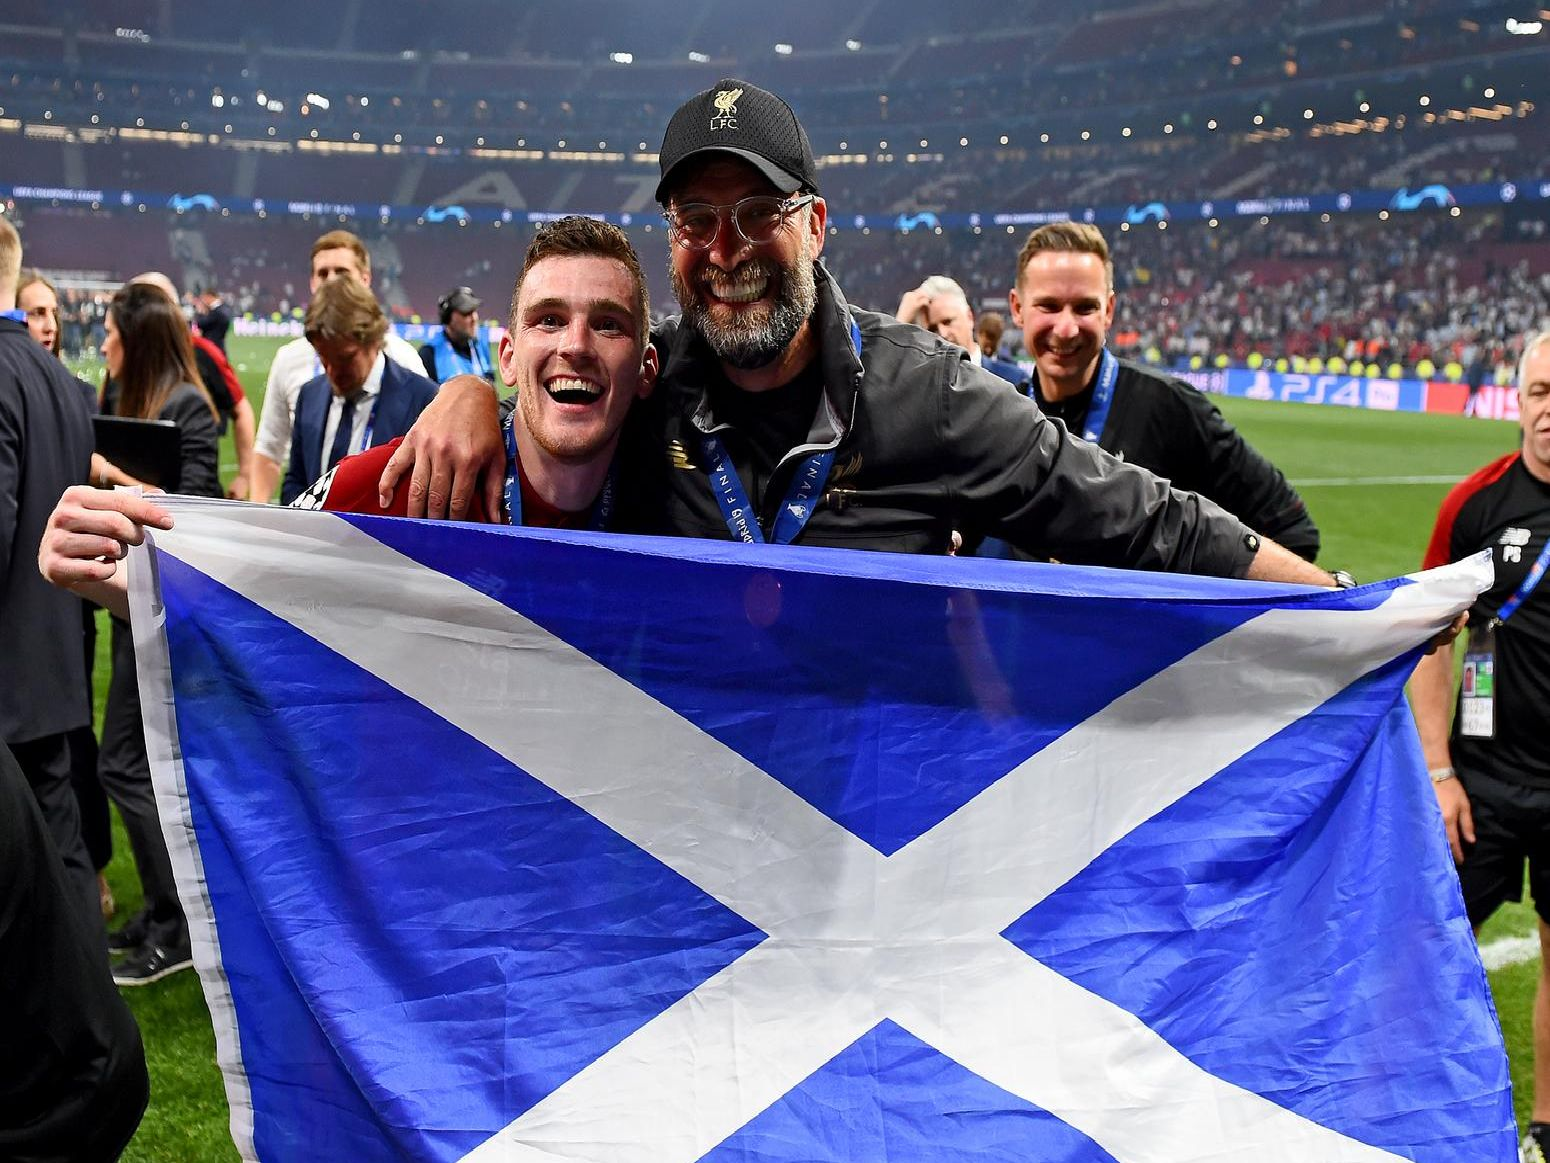 The 16 Champions League winners who've played in Scottish football